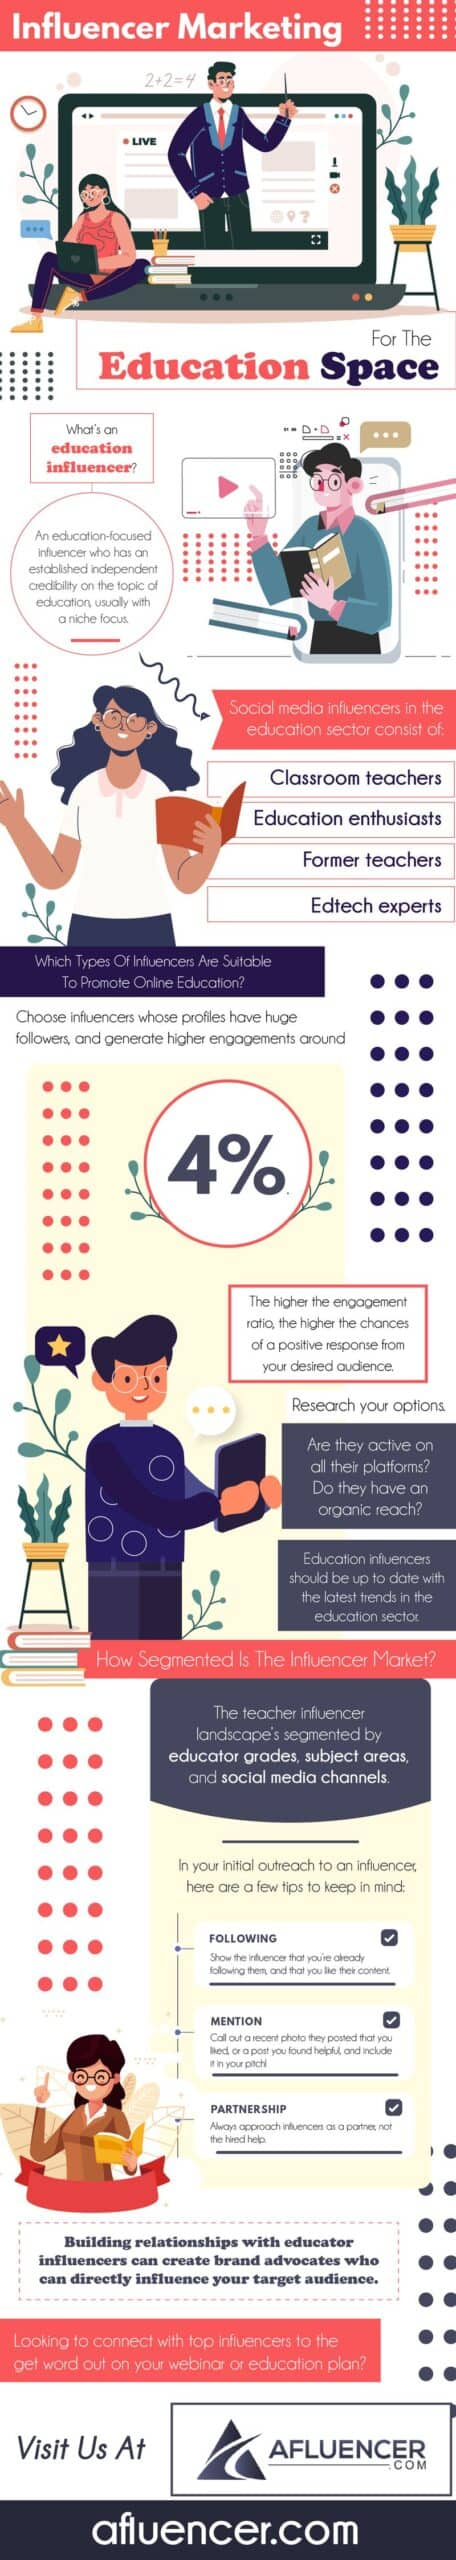 Influencer Marketing For The Education Space - Infographic by Afluencer